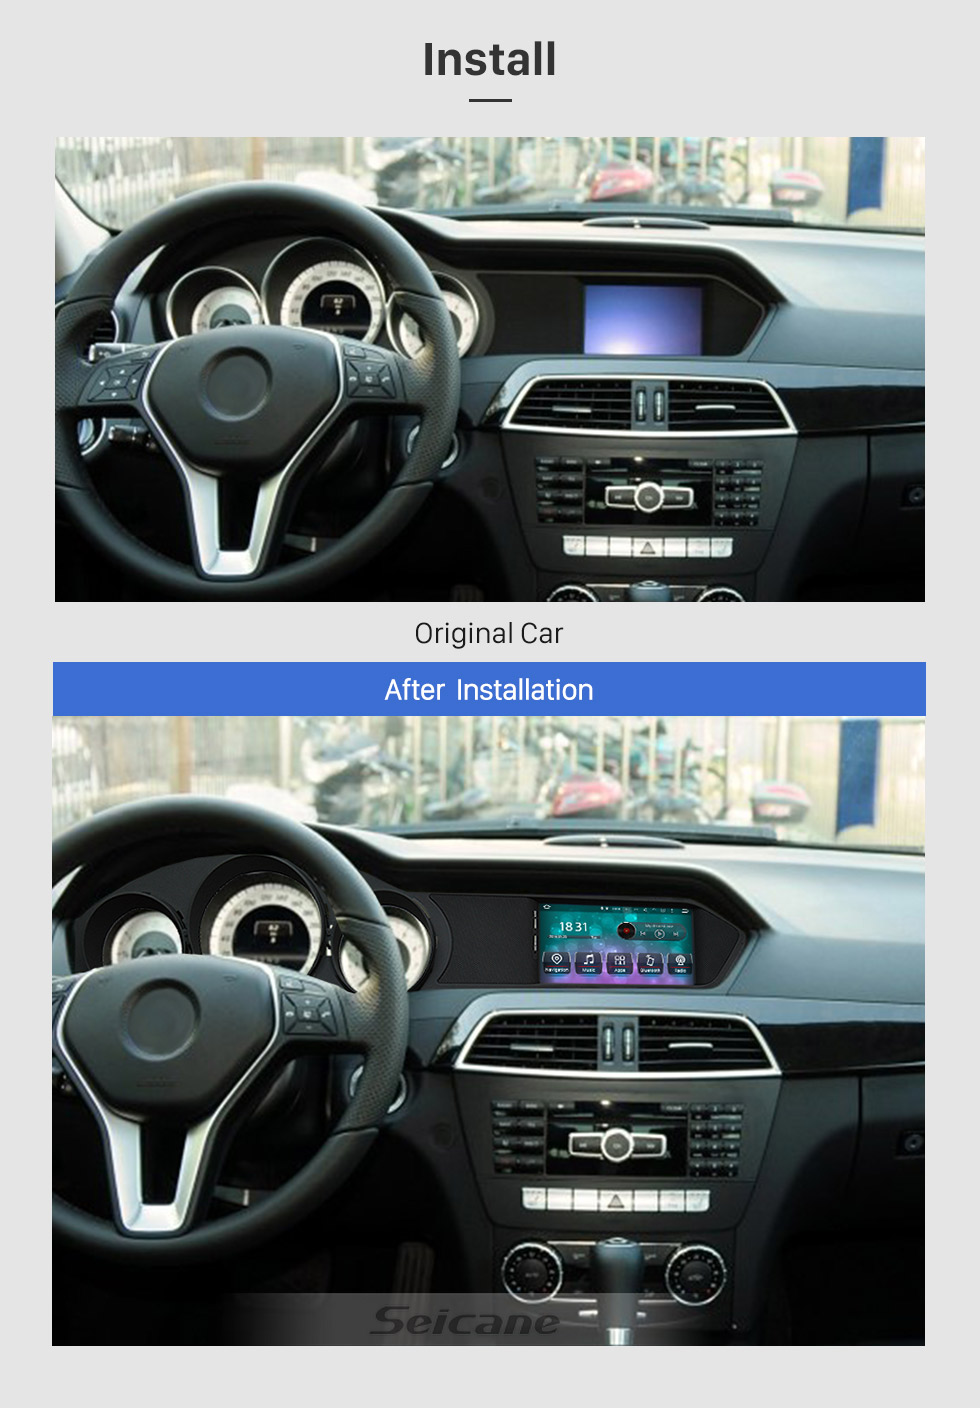 Seicane 7 Inch Android 8.0 Car Multimedia Player for 2012 2013 Mercedes-Benz C Class W204 C180k C200 HD Touchscreen Radio GPS Navigation Upgrade Unit Steering Wheel Control Bluetooth Music Wifi USB FM/AM/RDS support Carplay